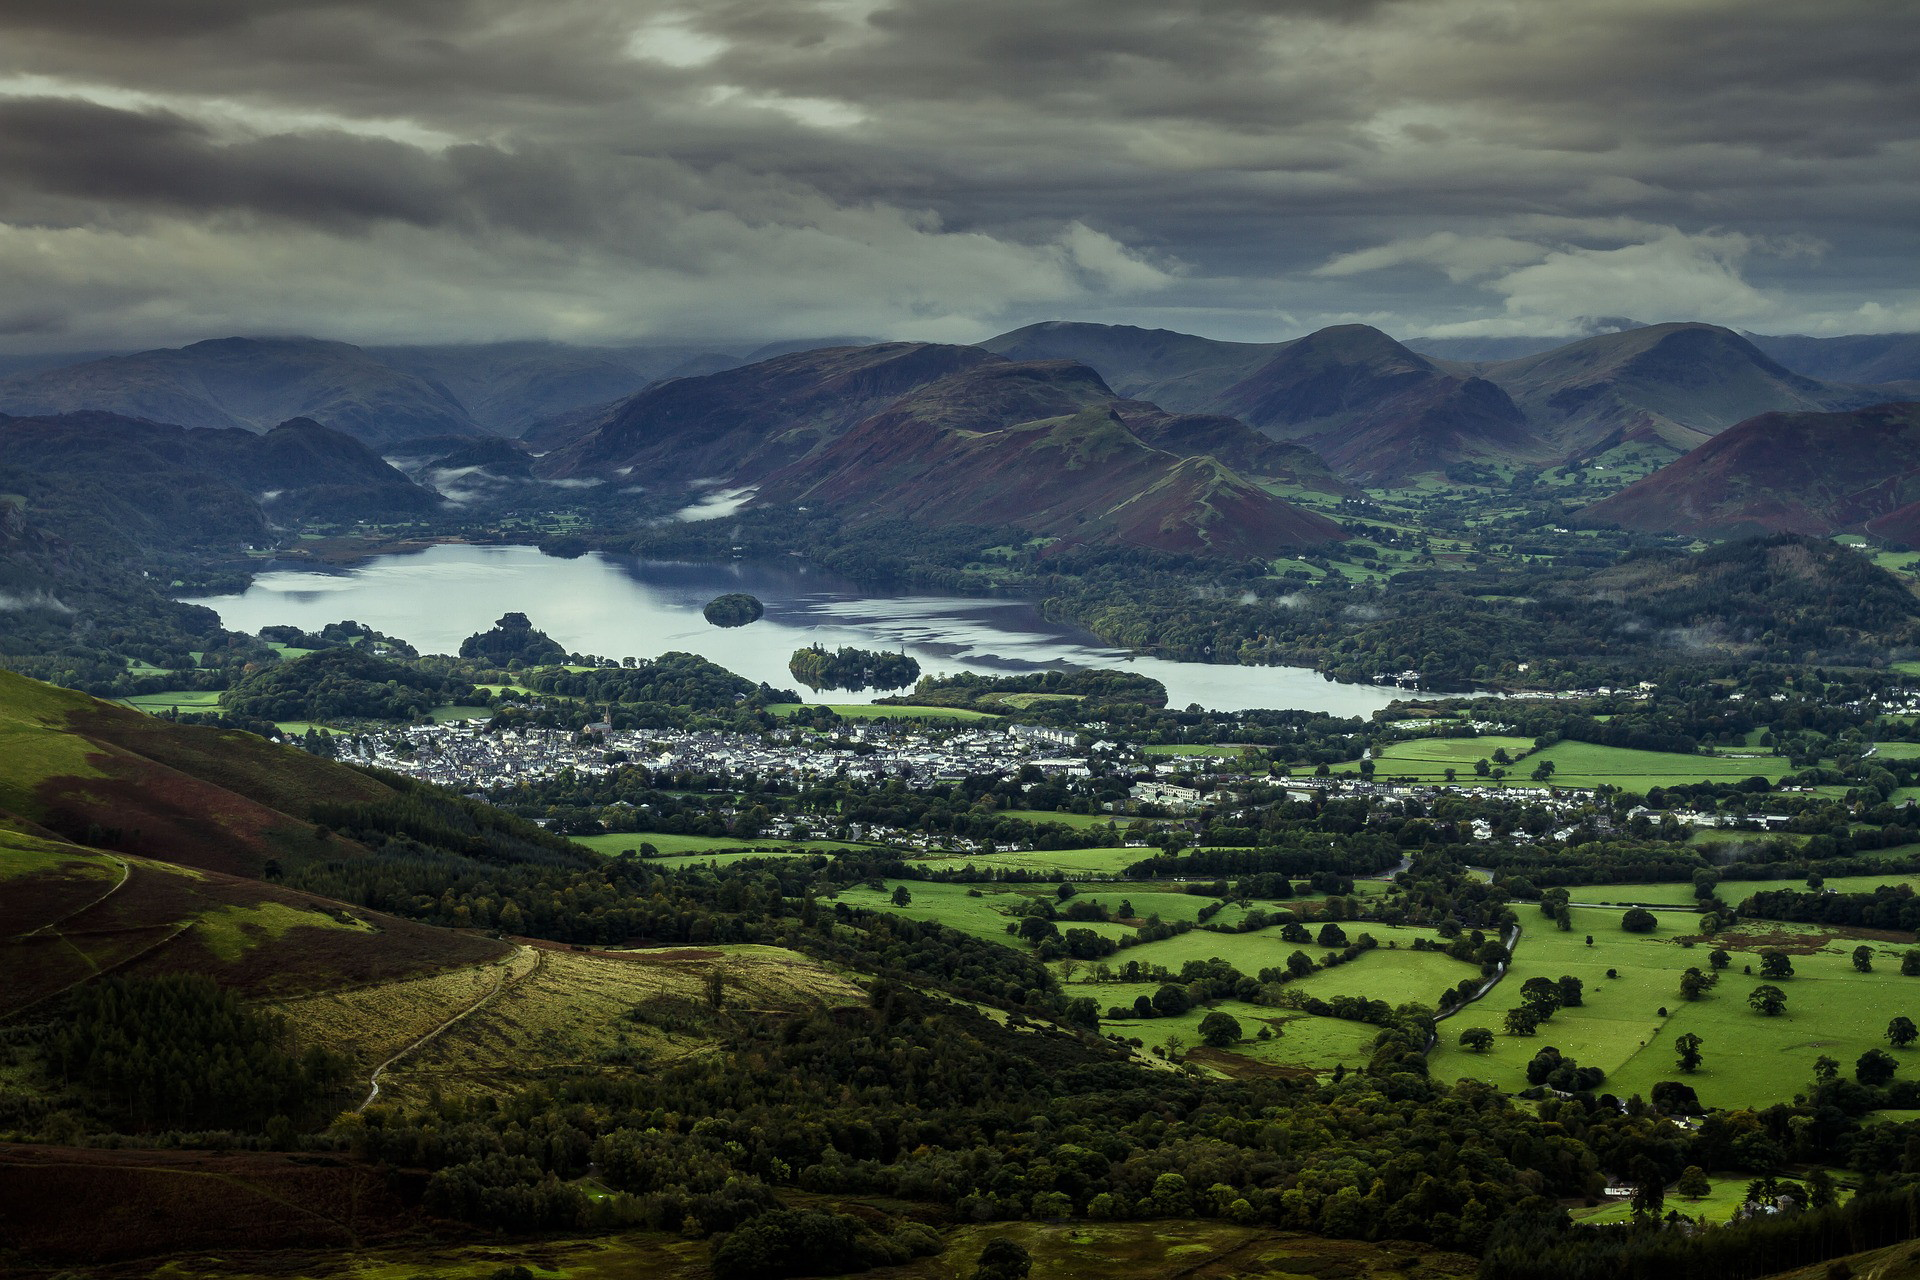 Pet friendly holidays in the Lake District